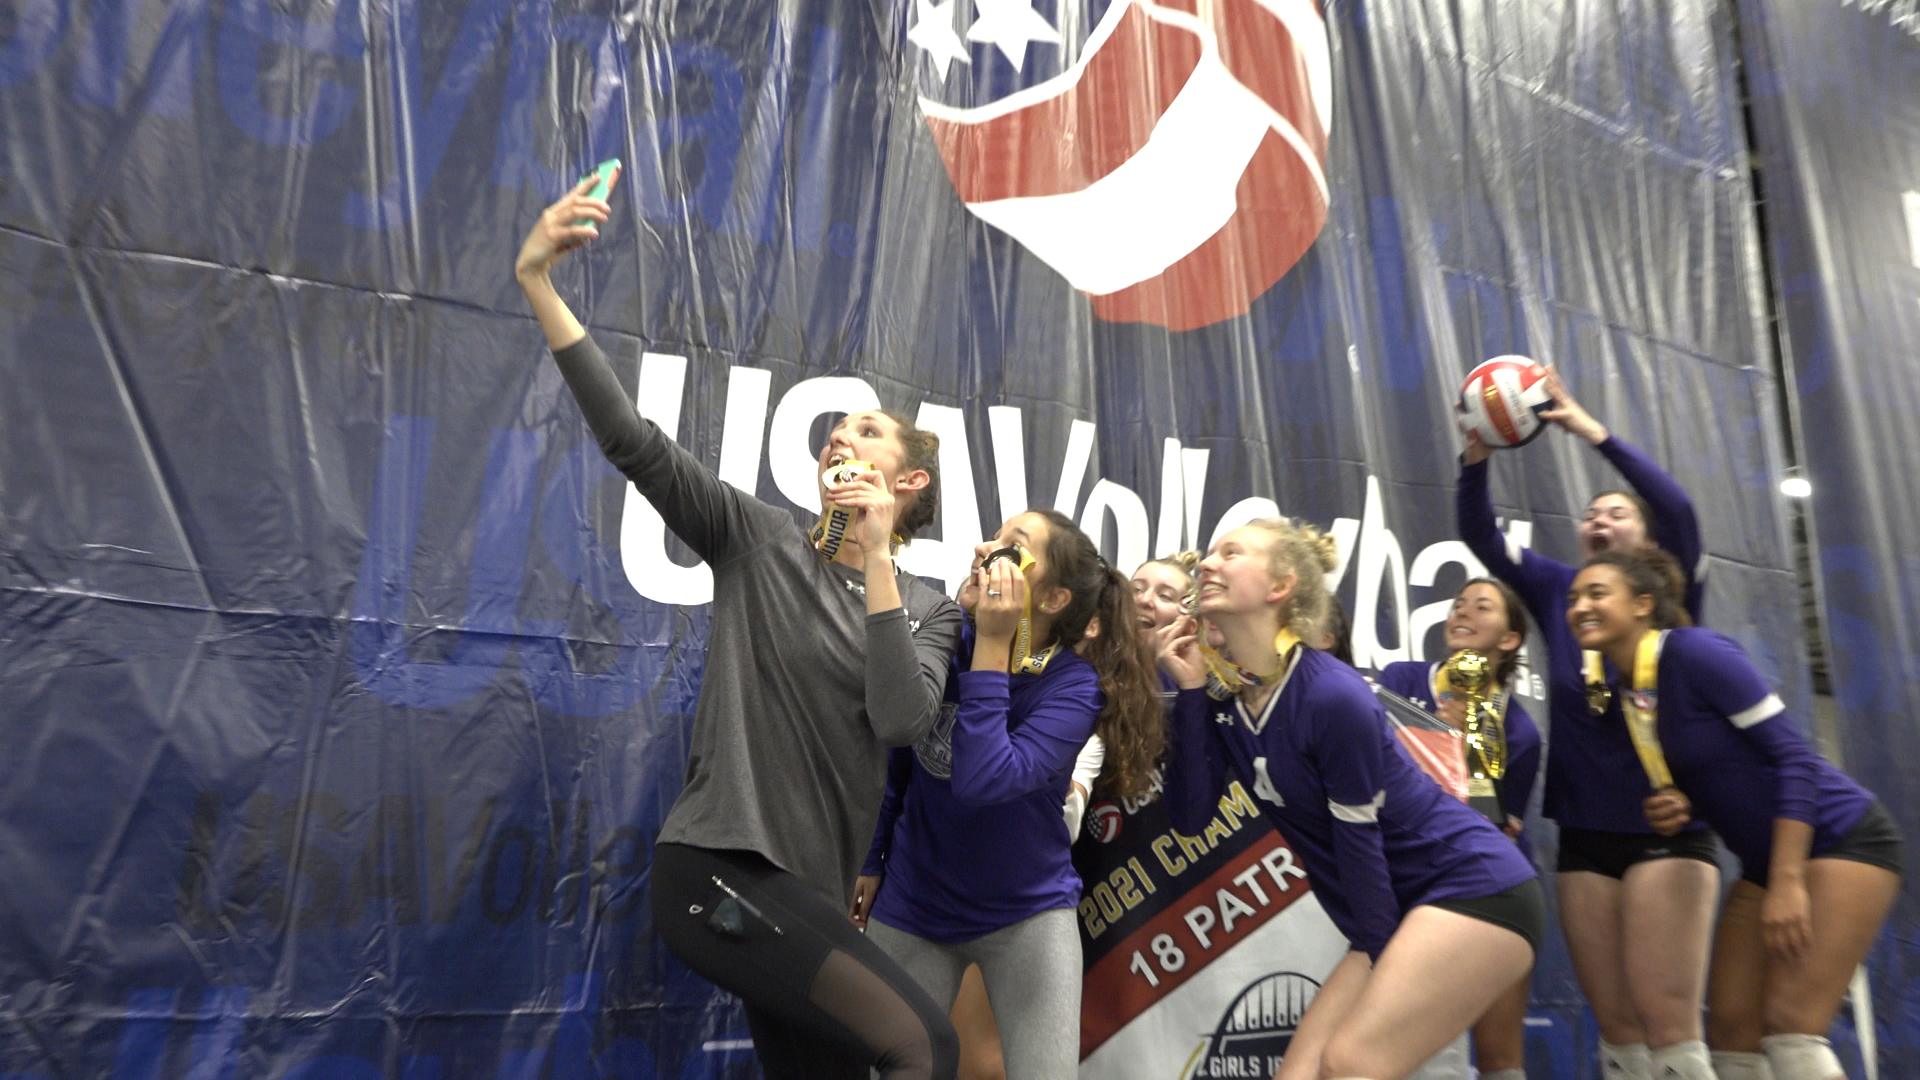 Hallie Enderle and her team (NIVA 18X) celebrate with a selfie on the championship stage at GJNC 18s.